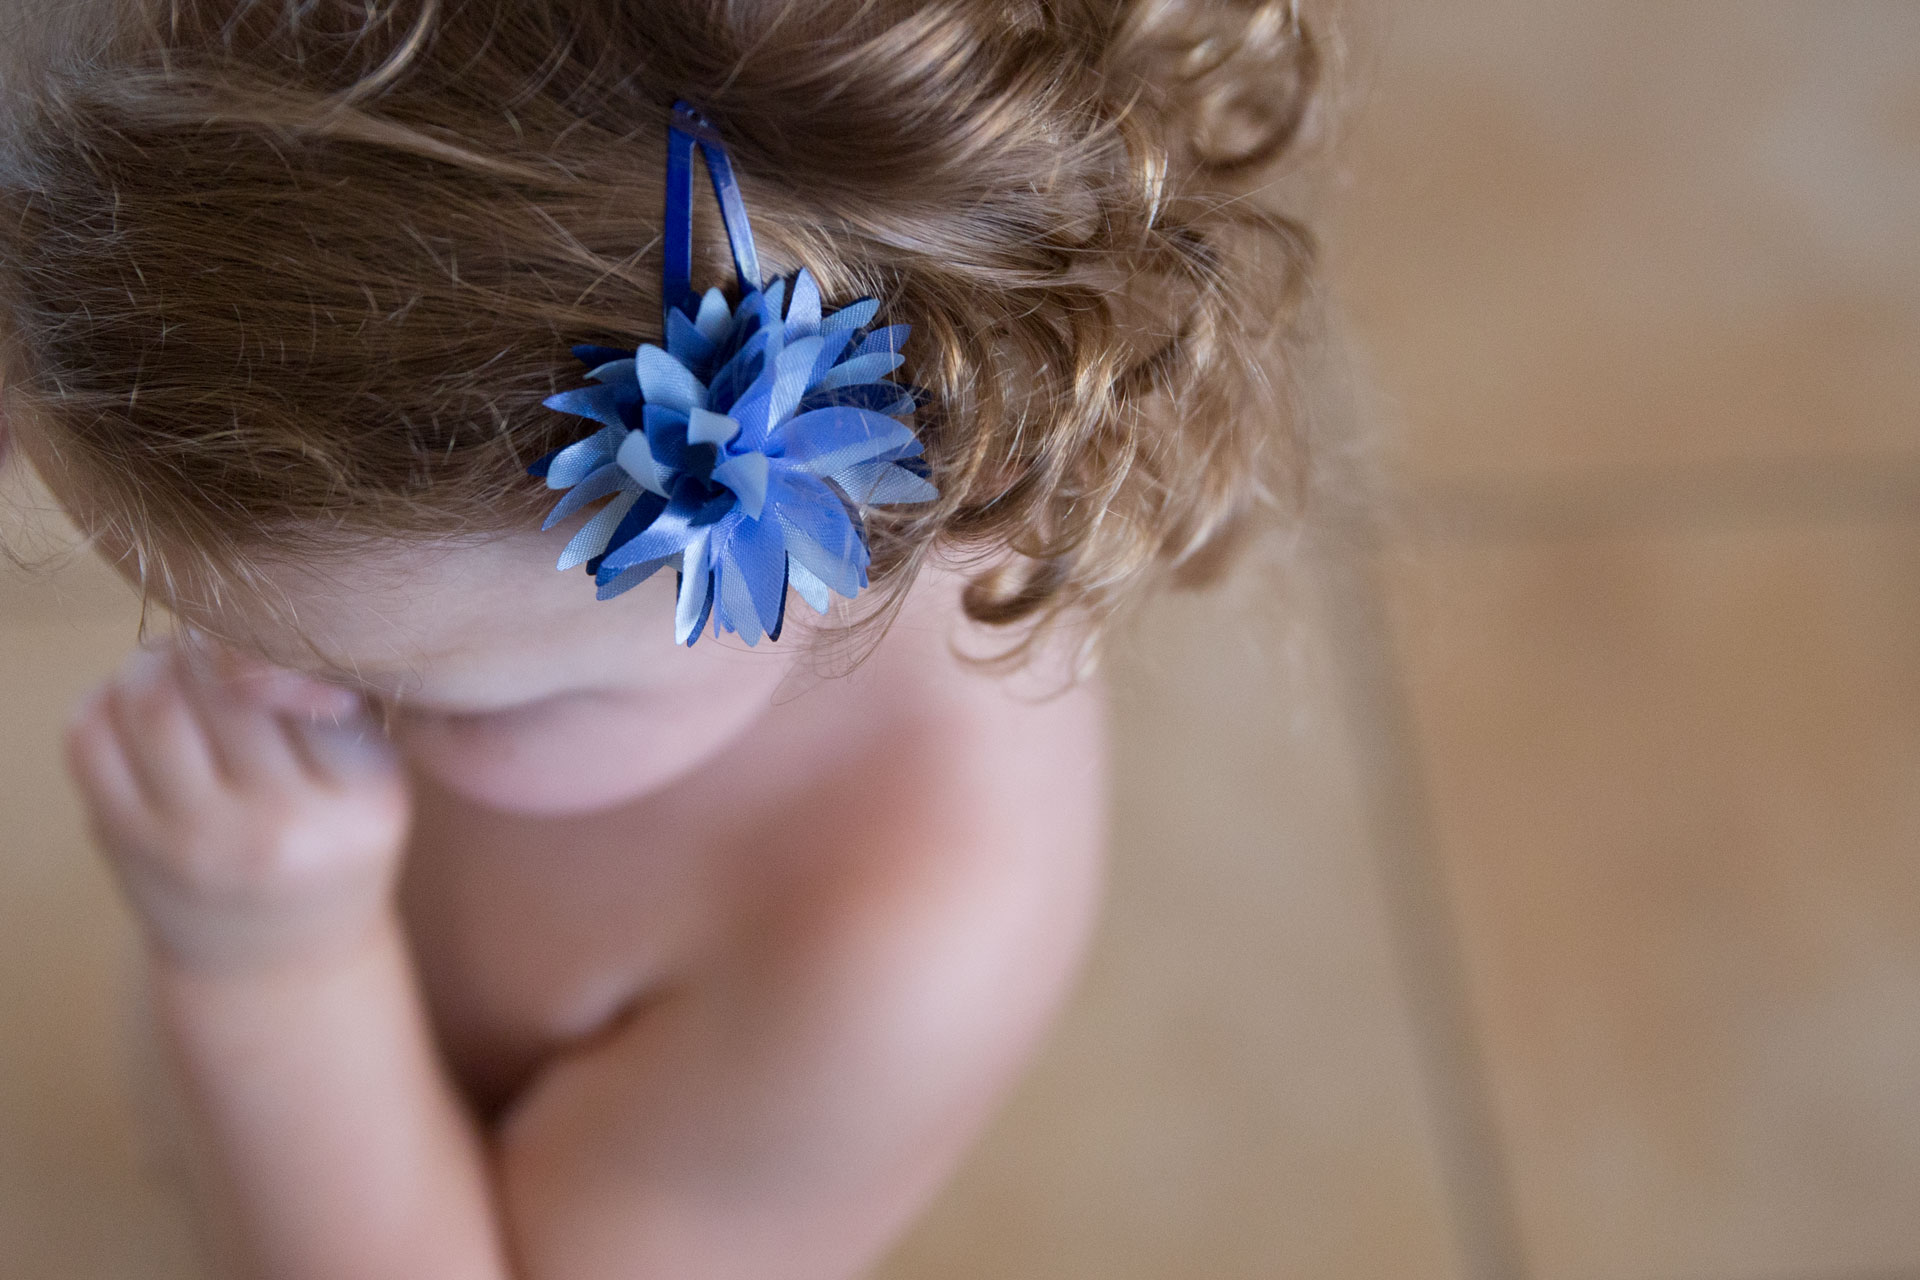 Look frump above young toddlers hair with a bow in it and really tight curly hair